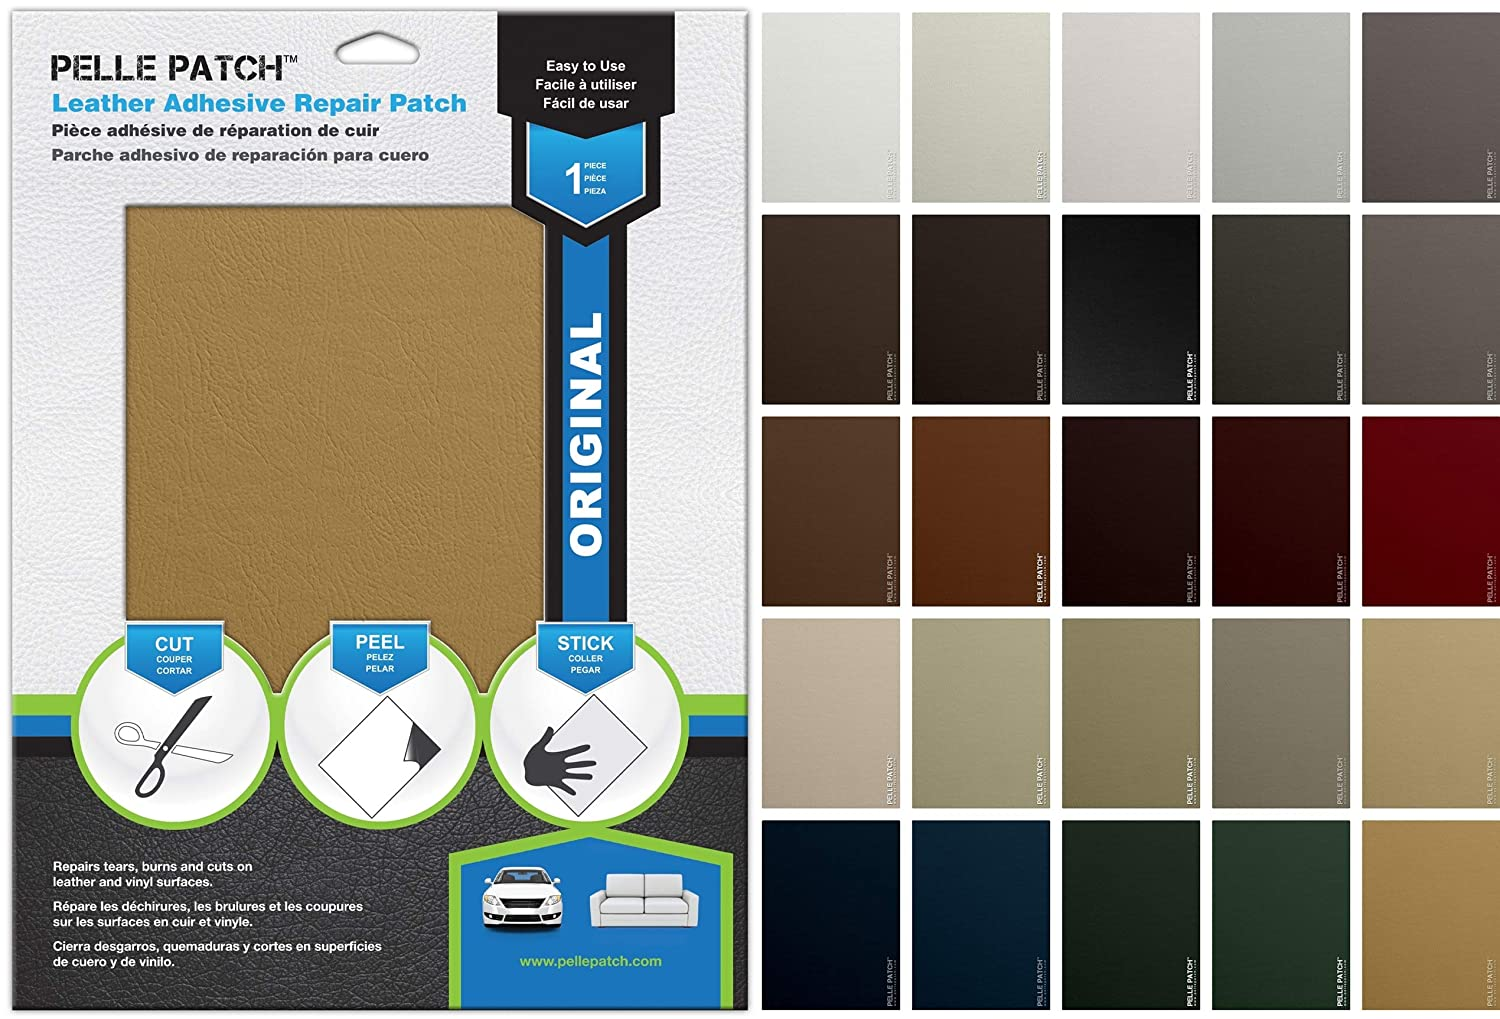 25 Colors Available Heavy-Duty 8x11 Black Leather /& Vinyl Adhesive Repair Patch Pelle Patch